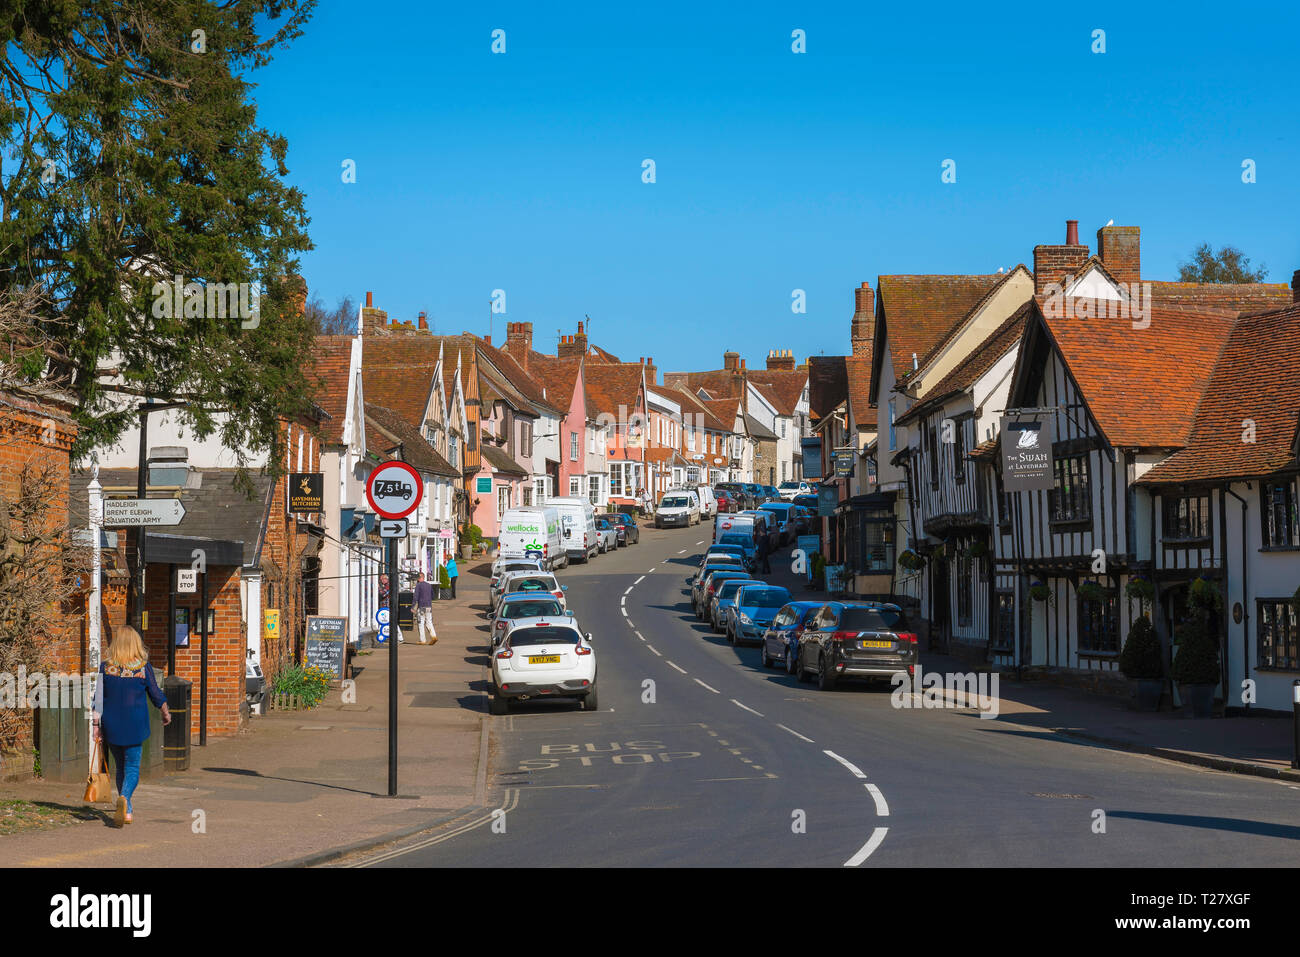 Lavenham Suffolk, view in summer of old buildings and shops lining both sides of the High Street in Lavenham, Babergh district, Suffolk, England, UK. - Stock Image